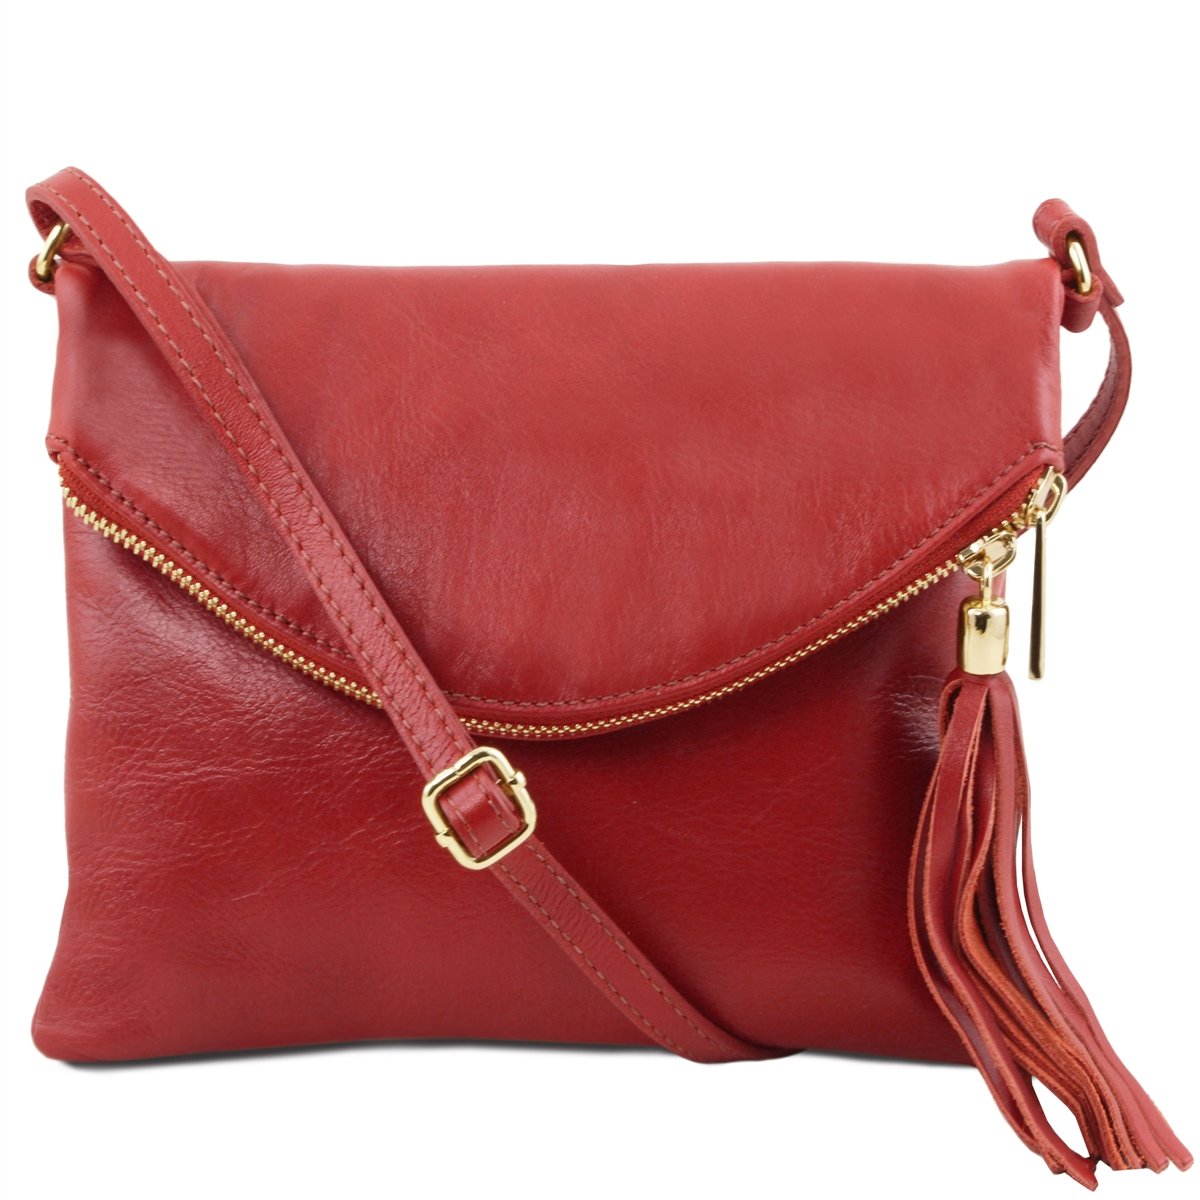 7f1d768c4d58 Tuscany Leather TL Young bag TL141153 - Red